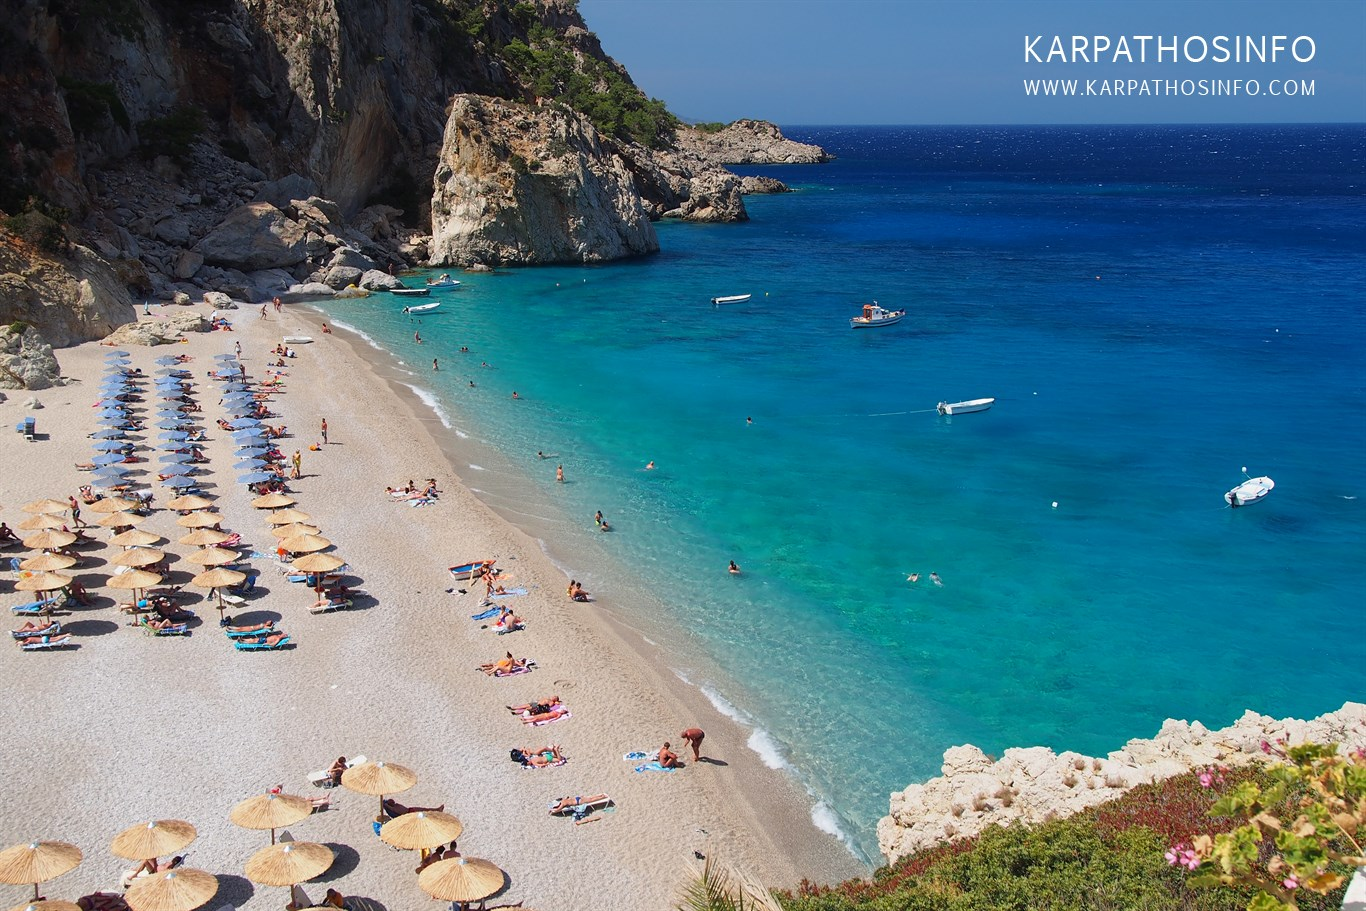 One of the best beaches in Karpathos - Kyra Panagia